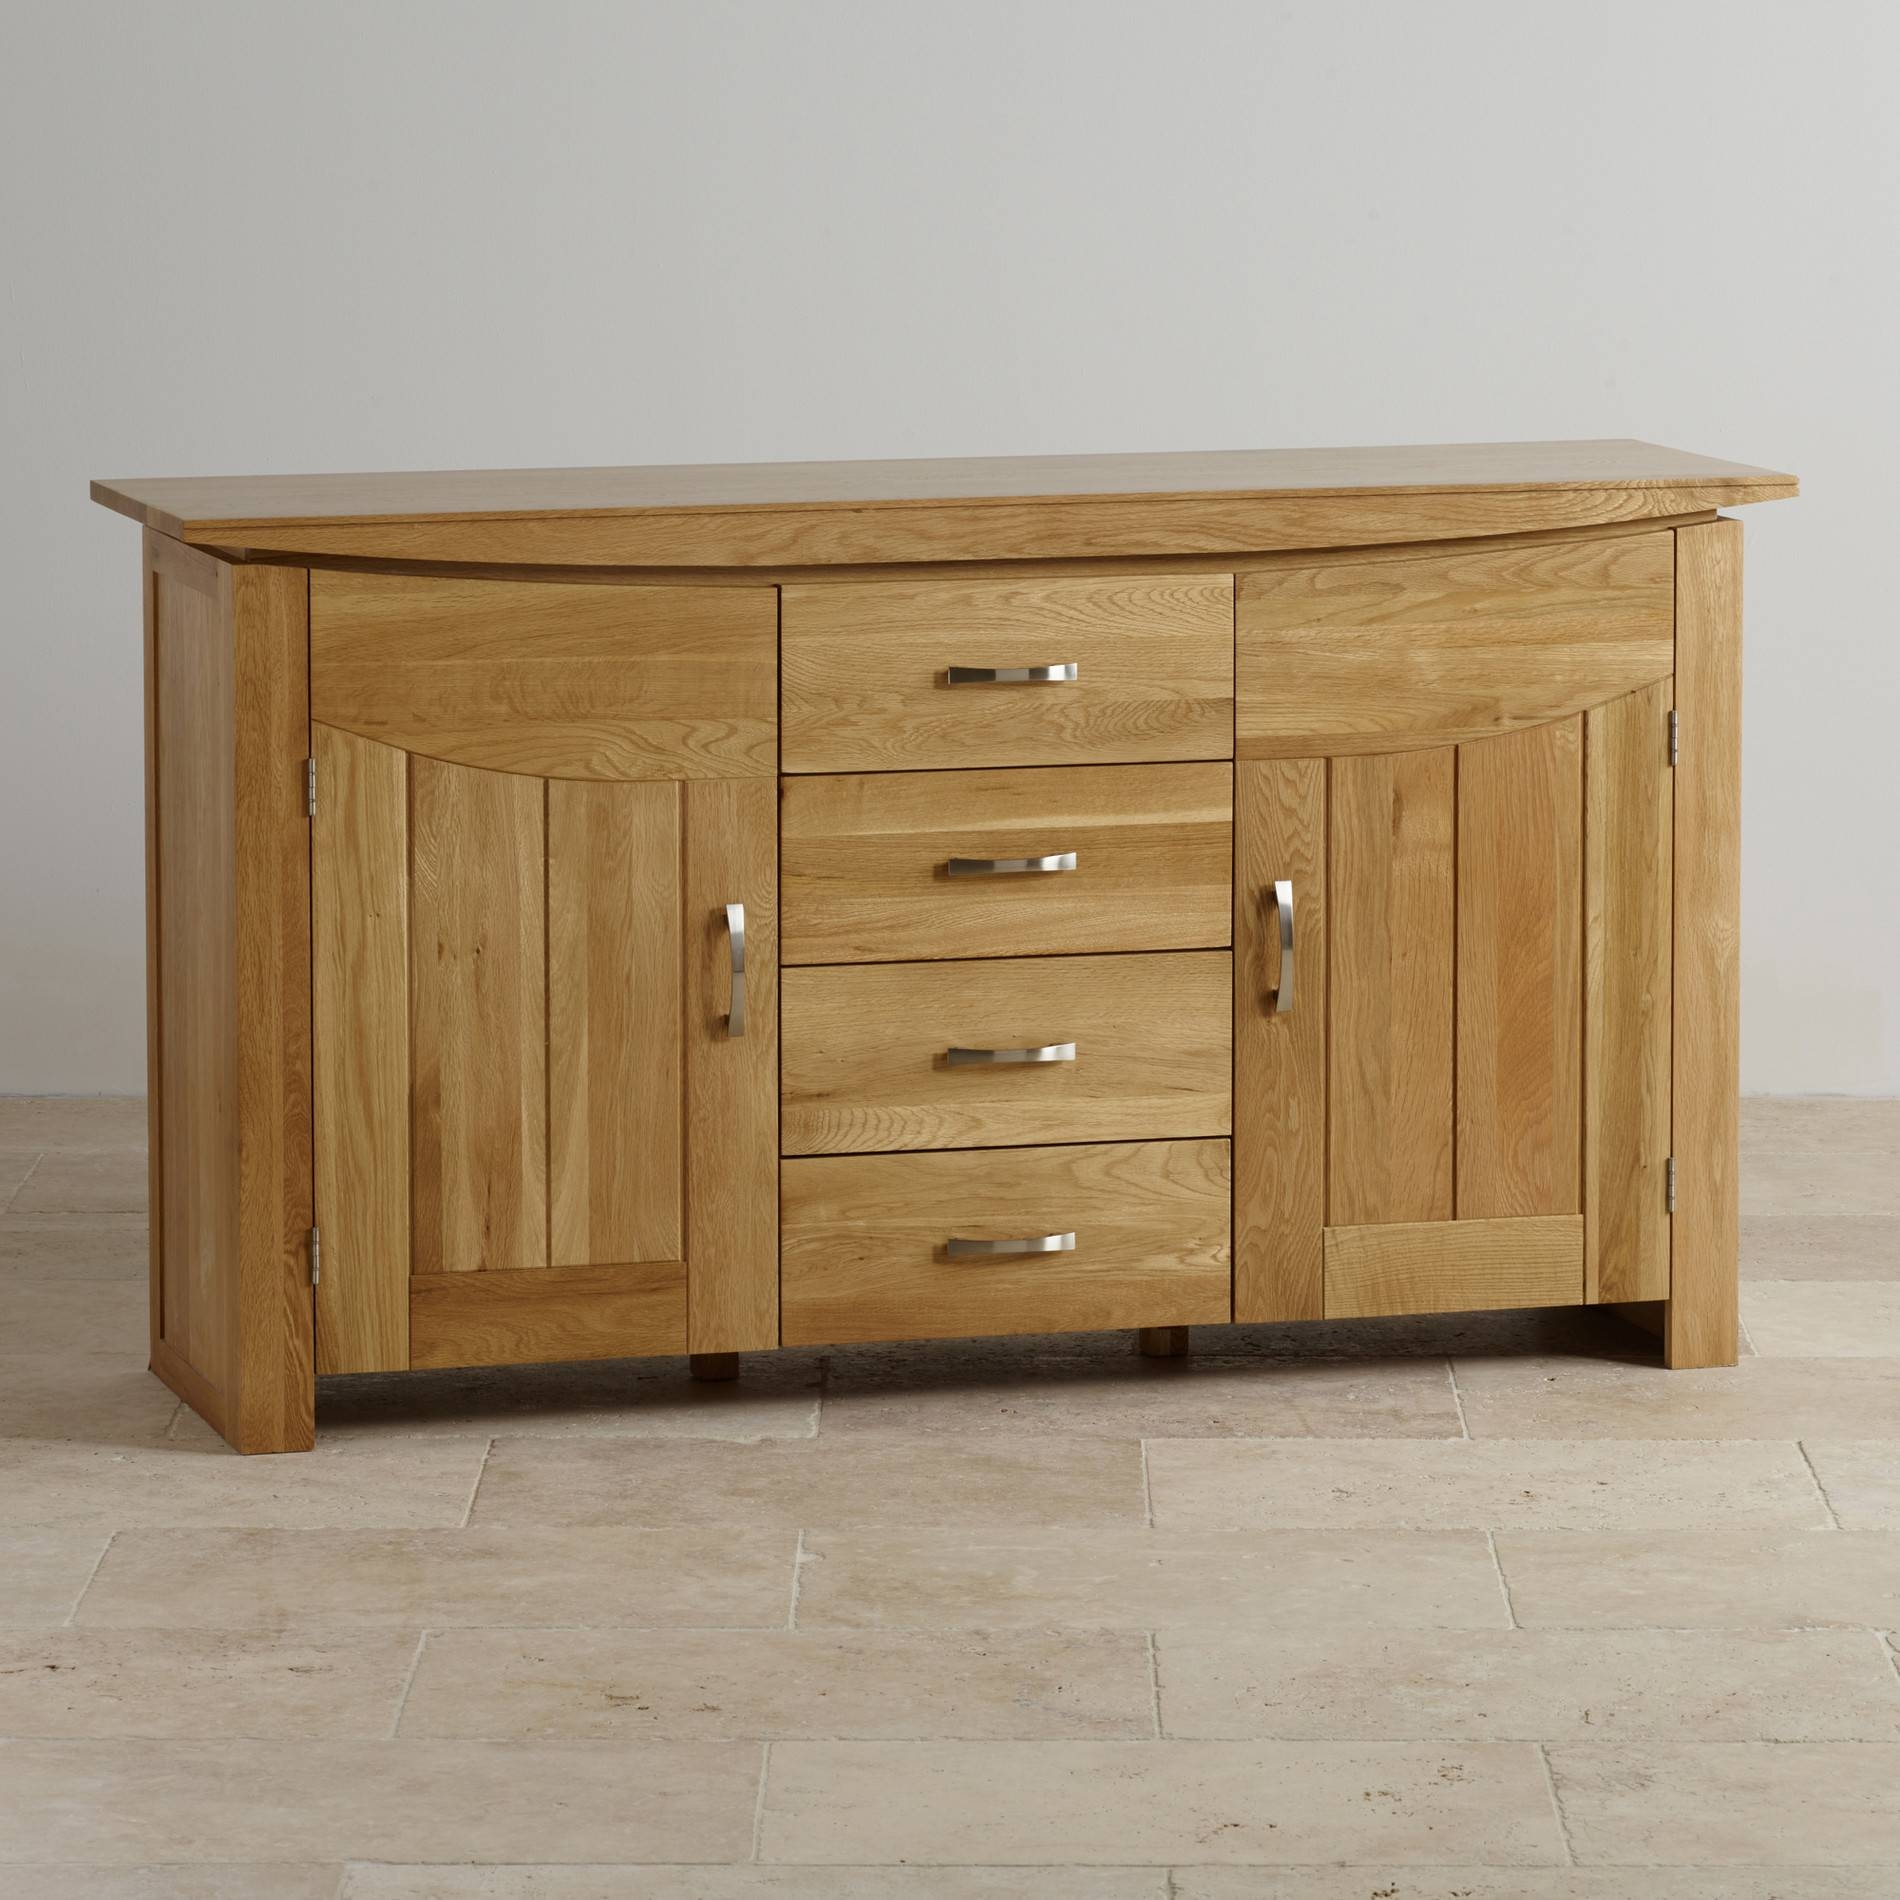 Tokyo Large Sideboard In Natural Solid Oak | Oak Furniture Land In Oak Sideboards For Sale (View 29 of 30)